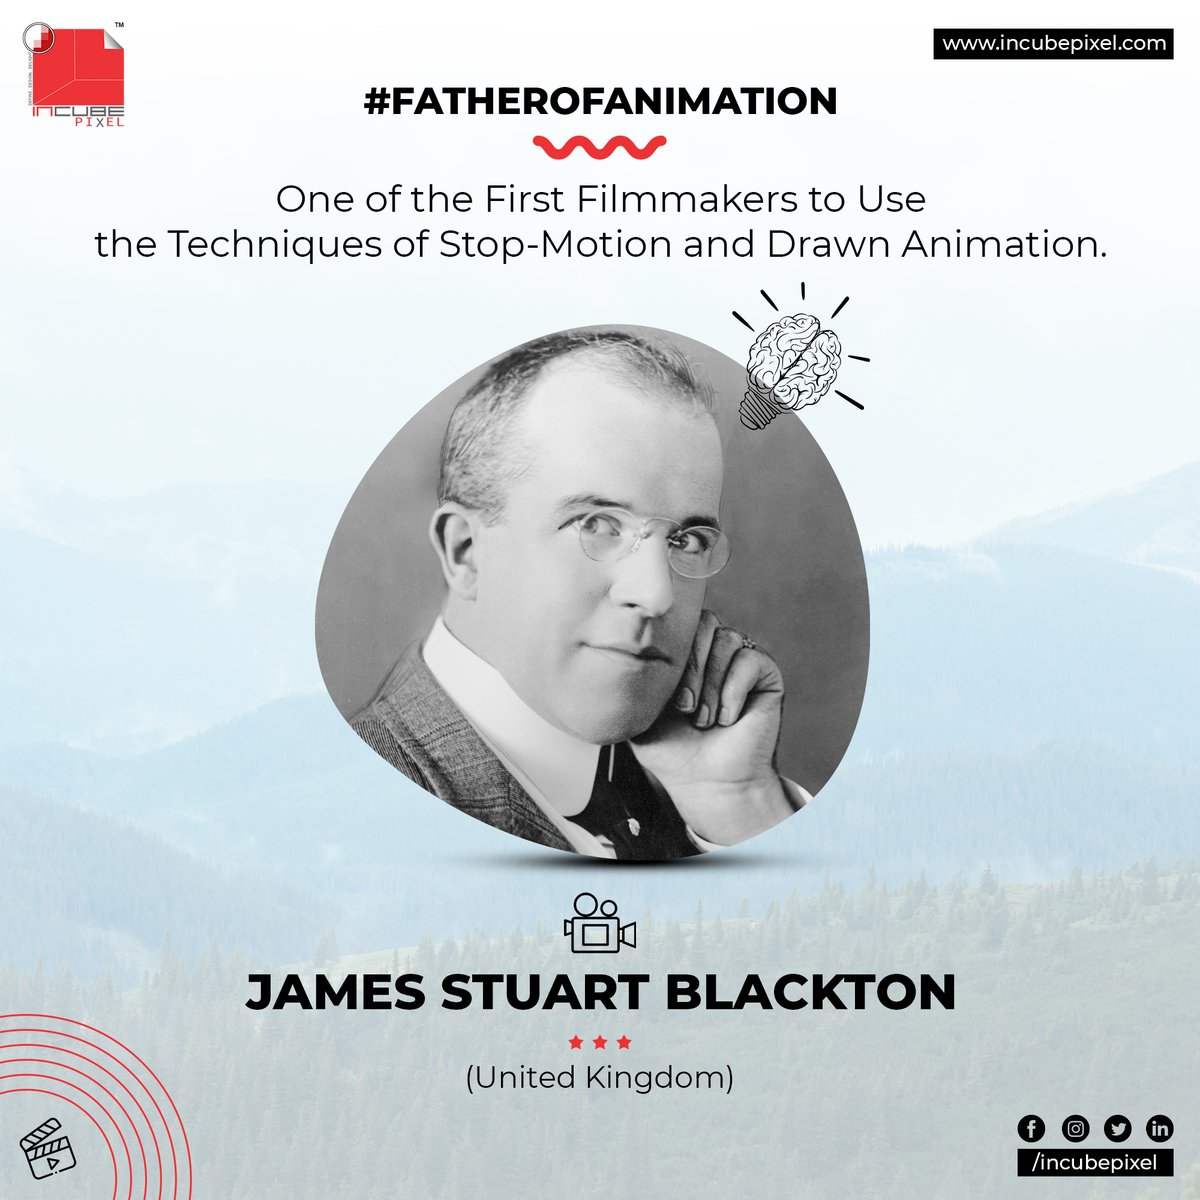 AMES STUART BLACKTON - One of the First Filmmakers to Use the Techniques of Stop-Motion and Drawn Animation.  #incubepixelvibes #incubepixel #innovators #incubeinspire #incubebrandingstudio #incubecorporatebranding #filmproductionstudio #politicalcampaigns pic.twitter.com/bydddwWYfi